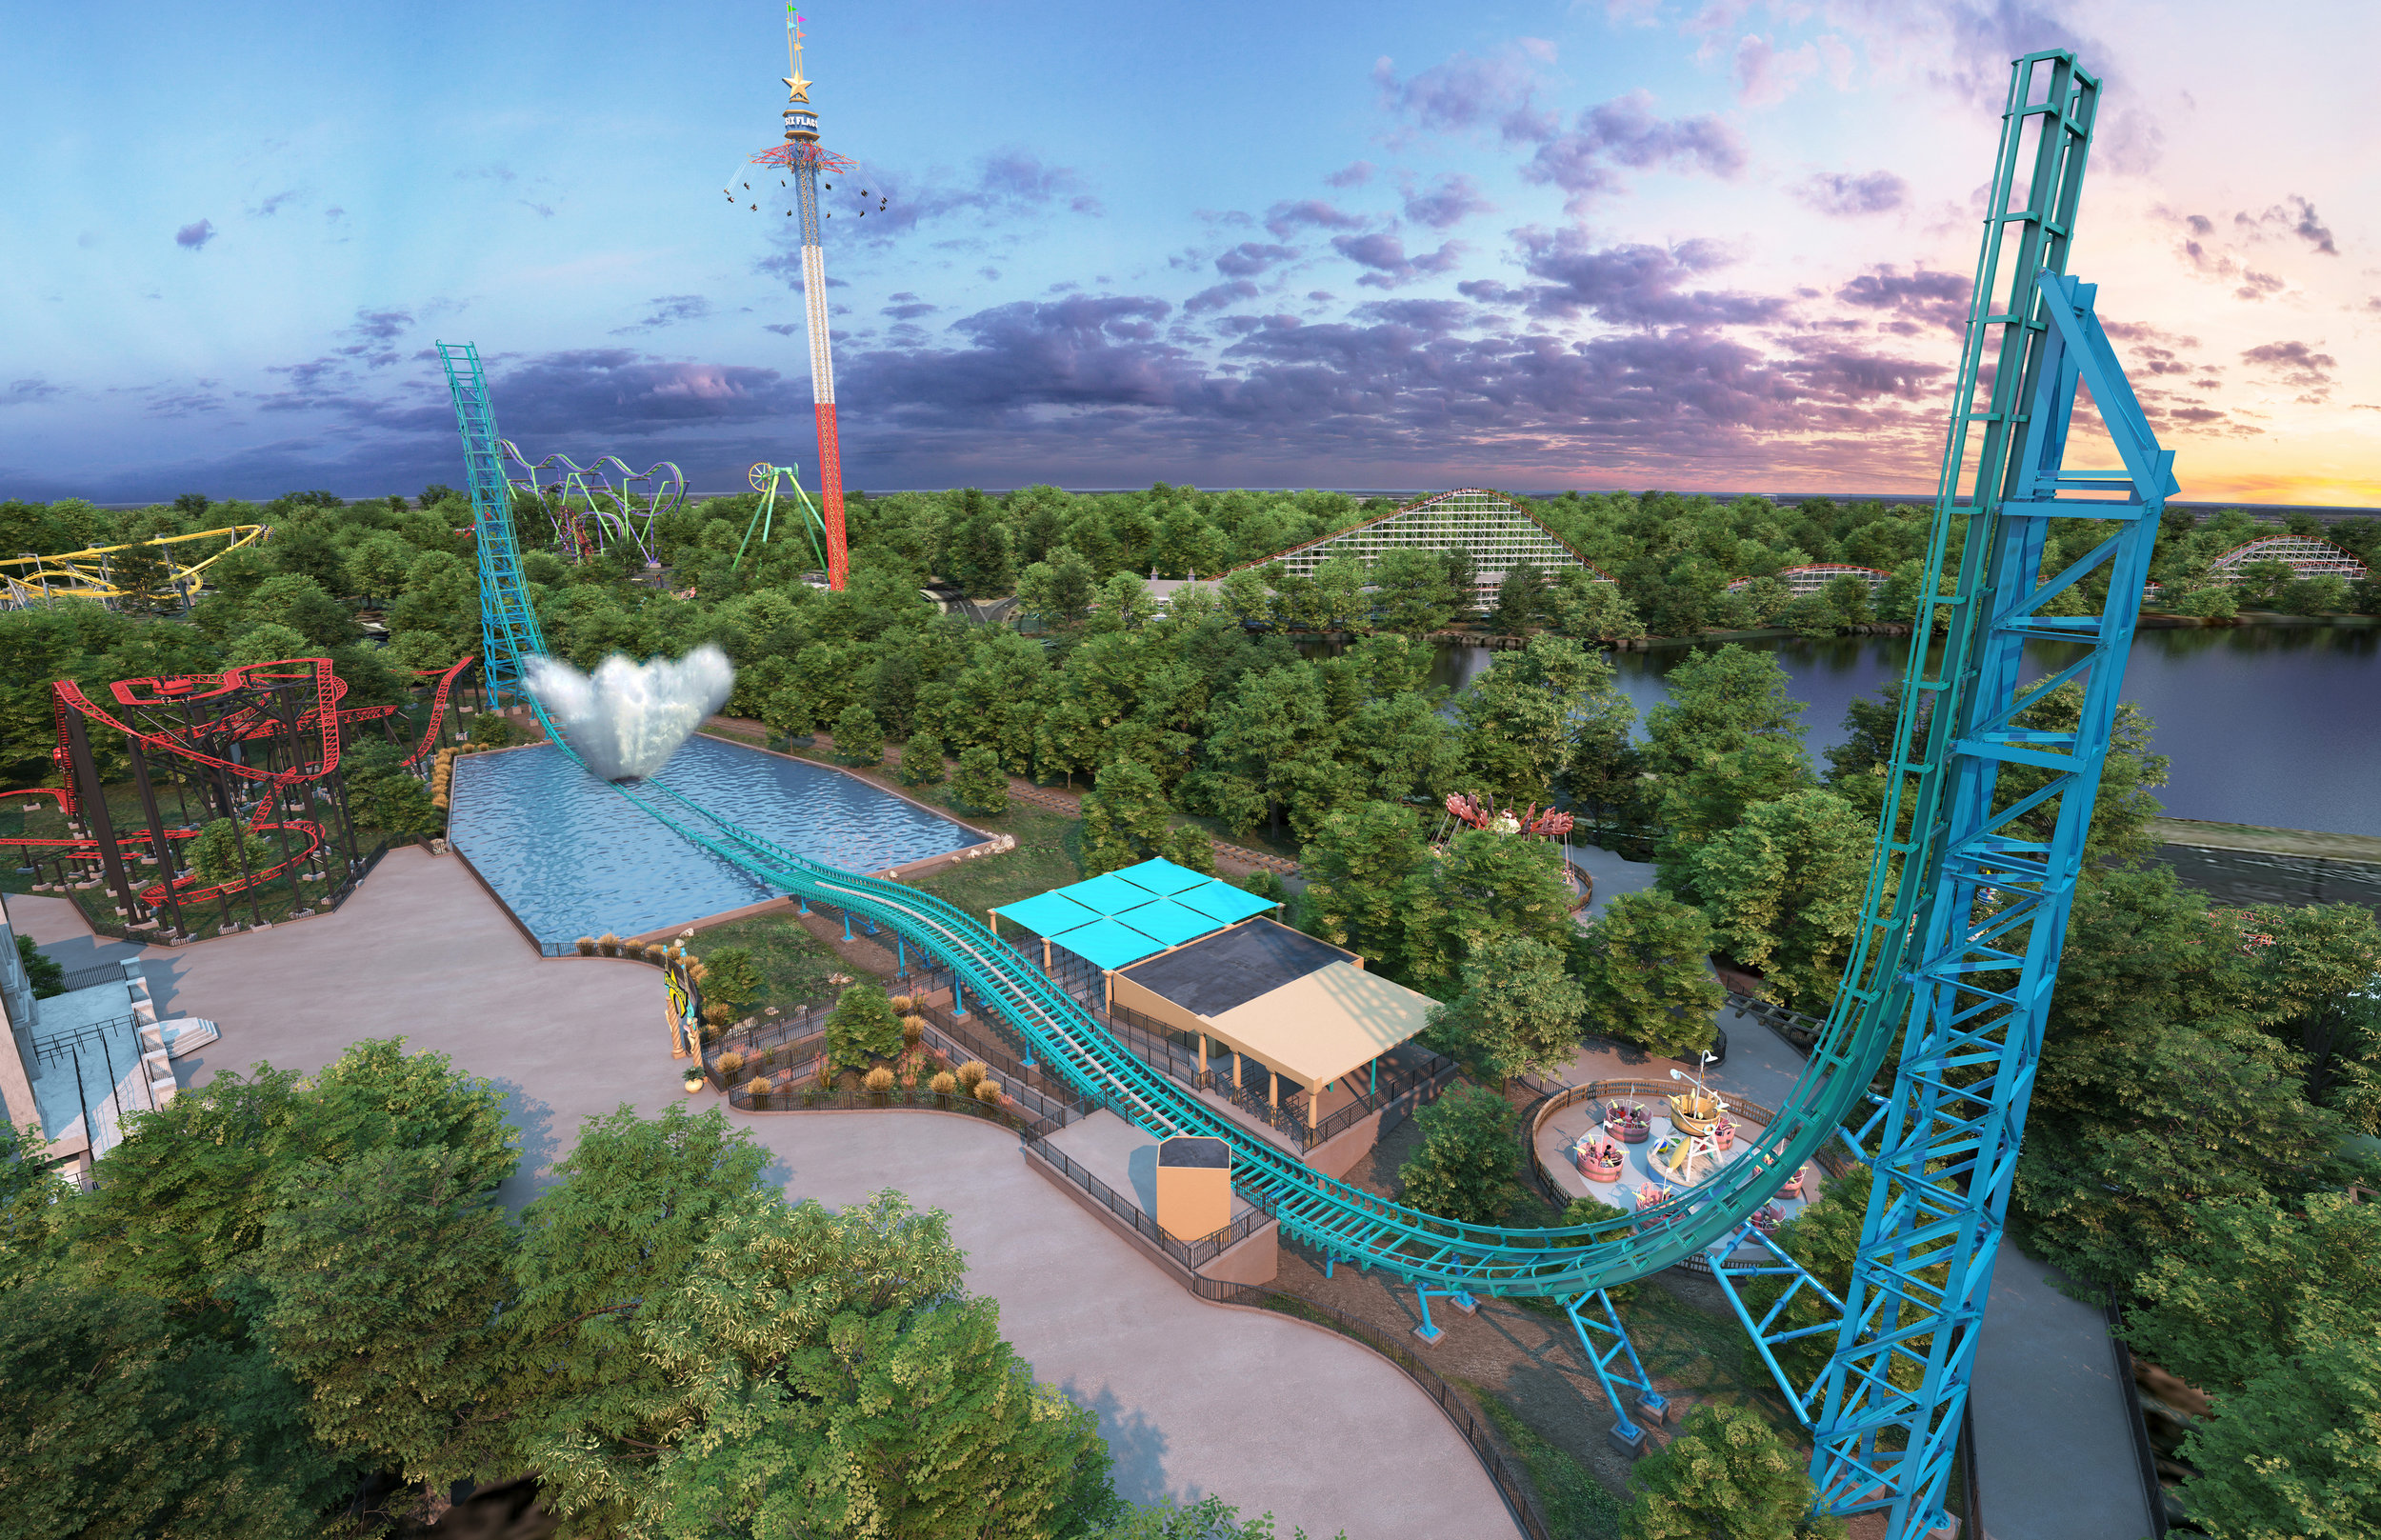 Two 148-foot-tall twin towers sit on each end of the ride track.